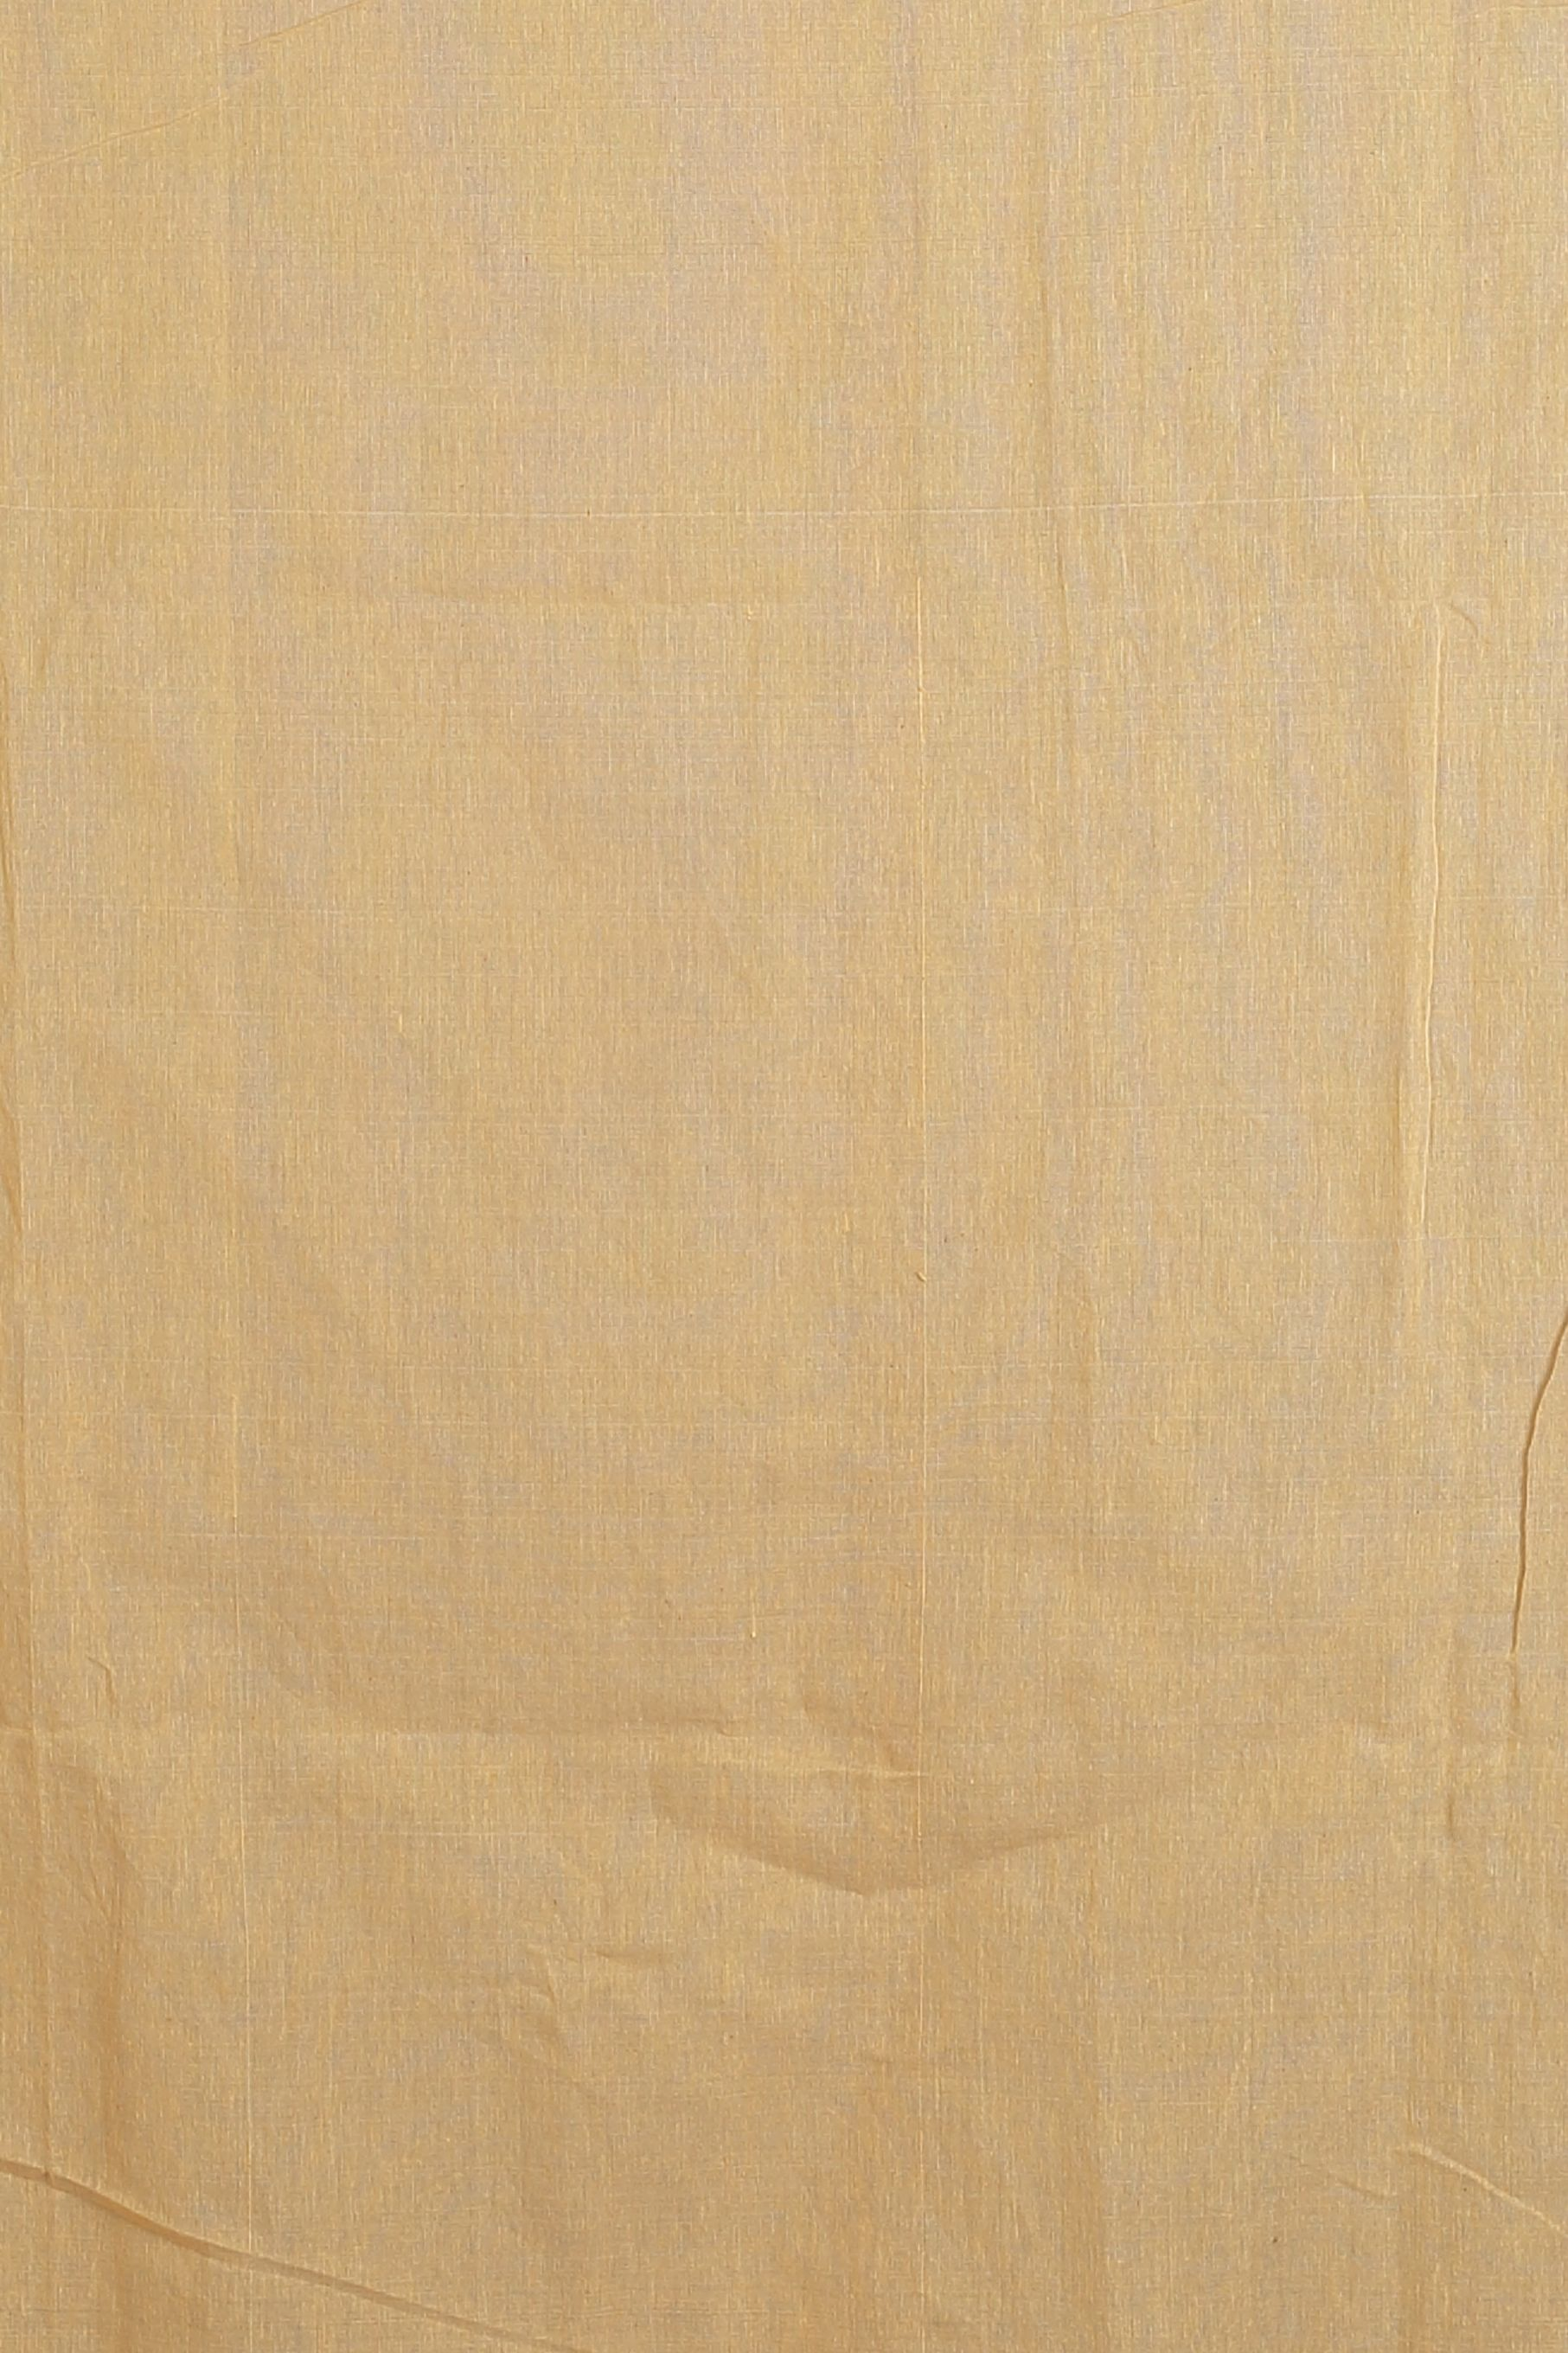 Beige and Red Hand Woven Blended Cotton Saree 2